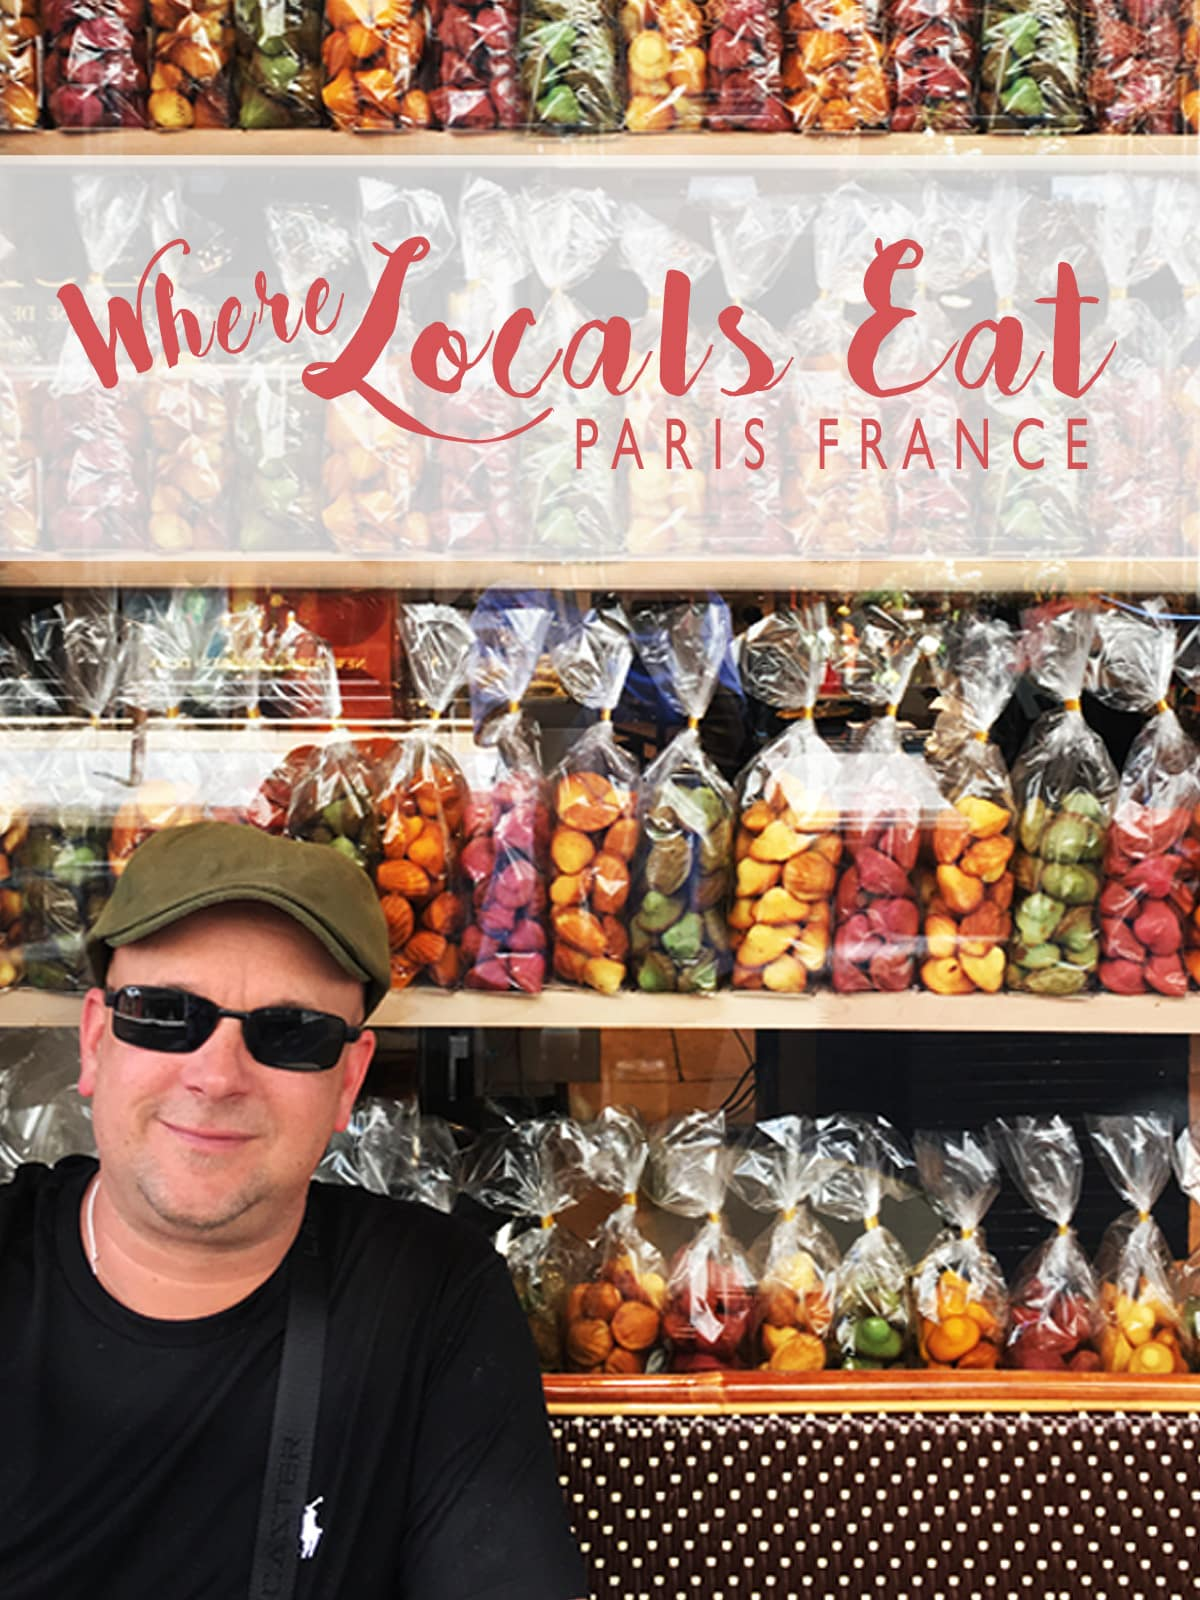 Best restaurants in Paris are always where the locals eat so I asked around. Paris can be expensive and locals never pay full price for a meal.